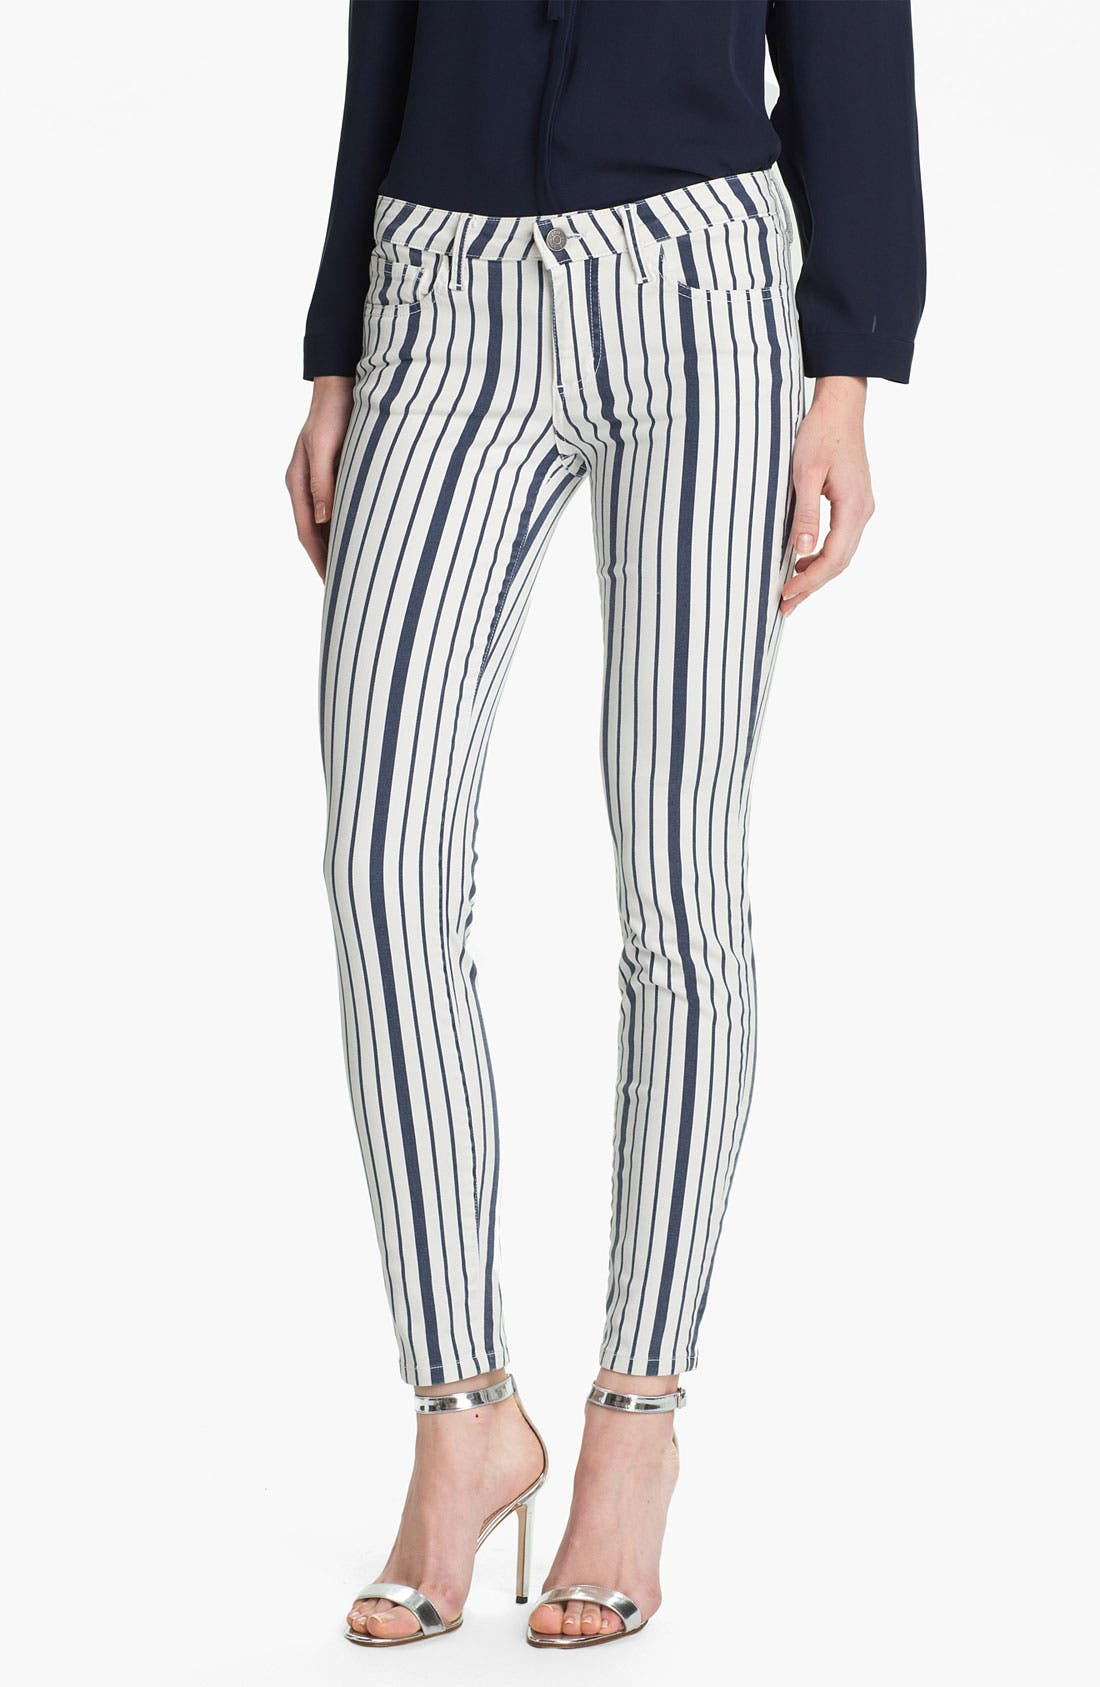 Alternate Image 1 Selected - Joie 'Nailah' Skinny Pants